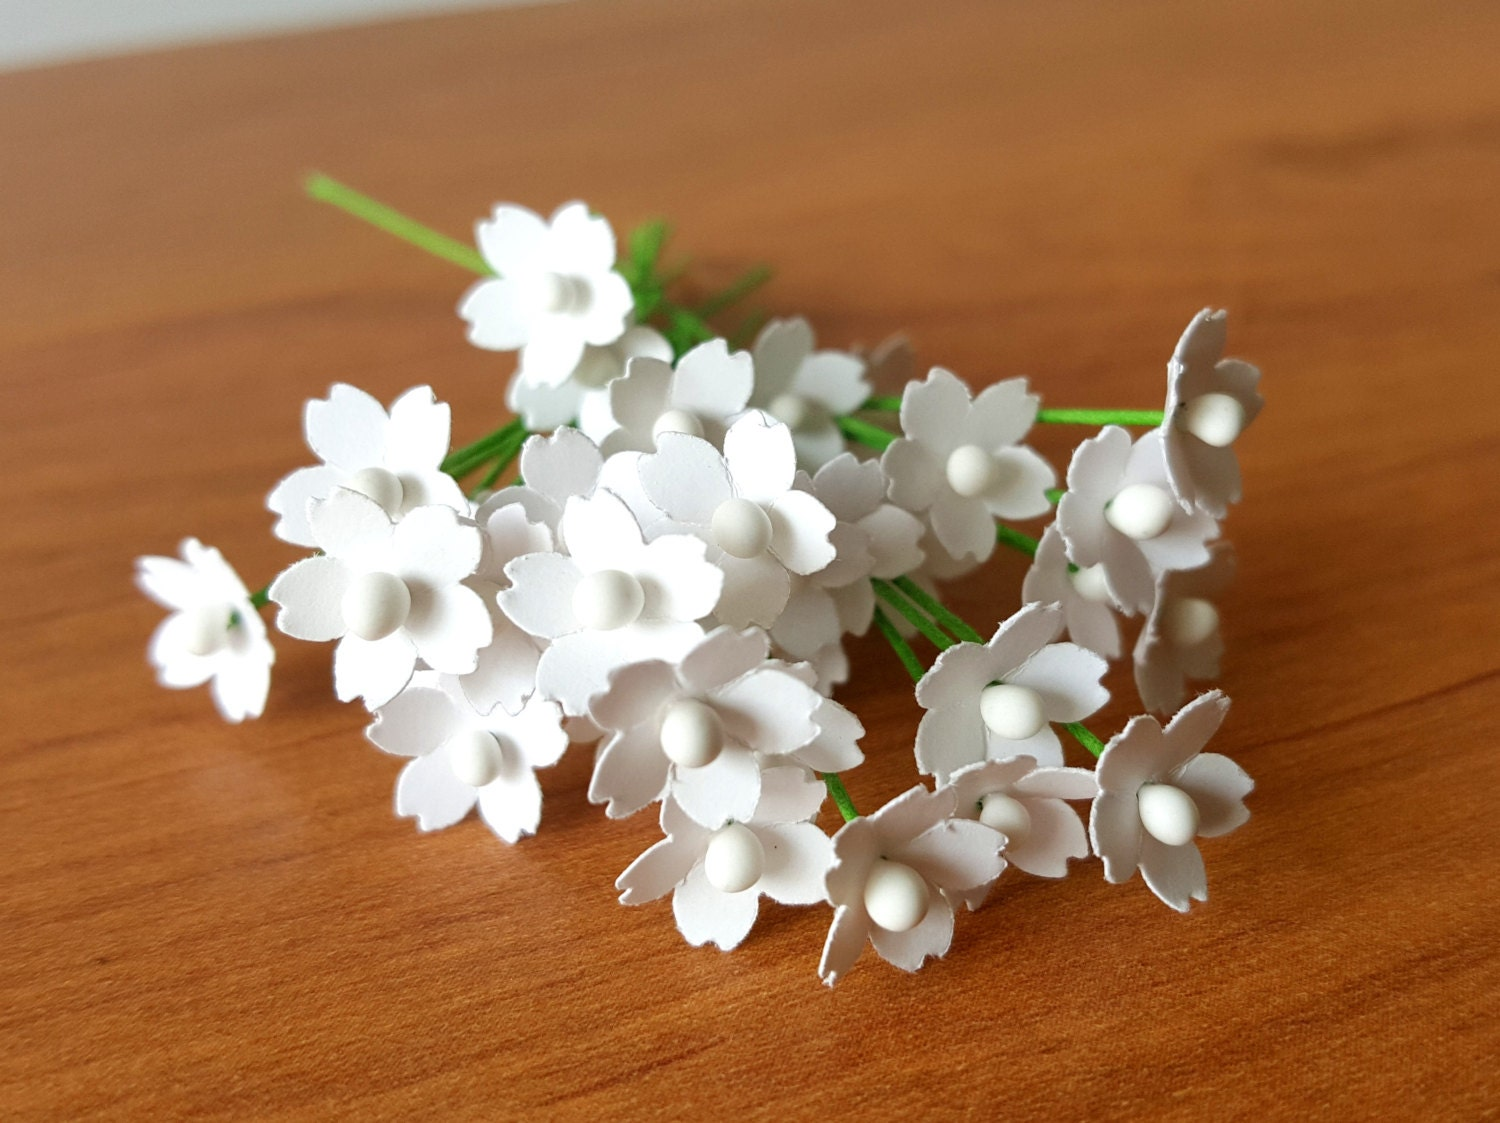 100 Miniature White Paper Flowers / 5mm white flowers